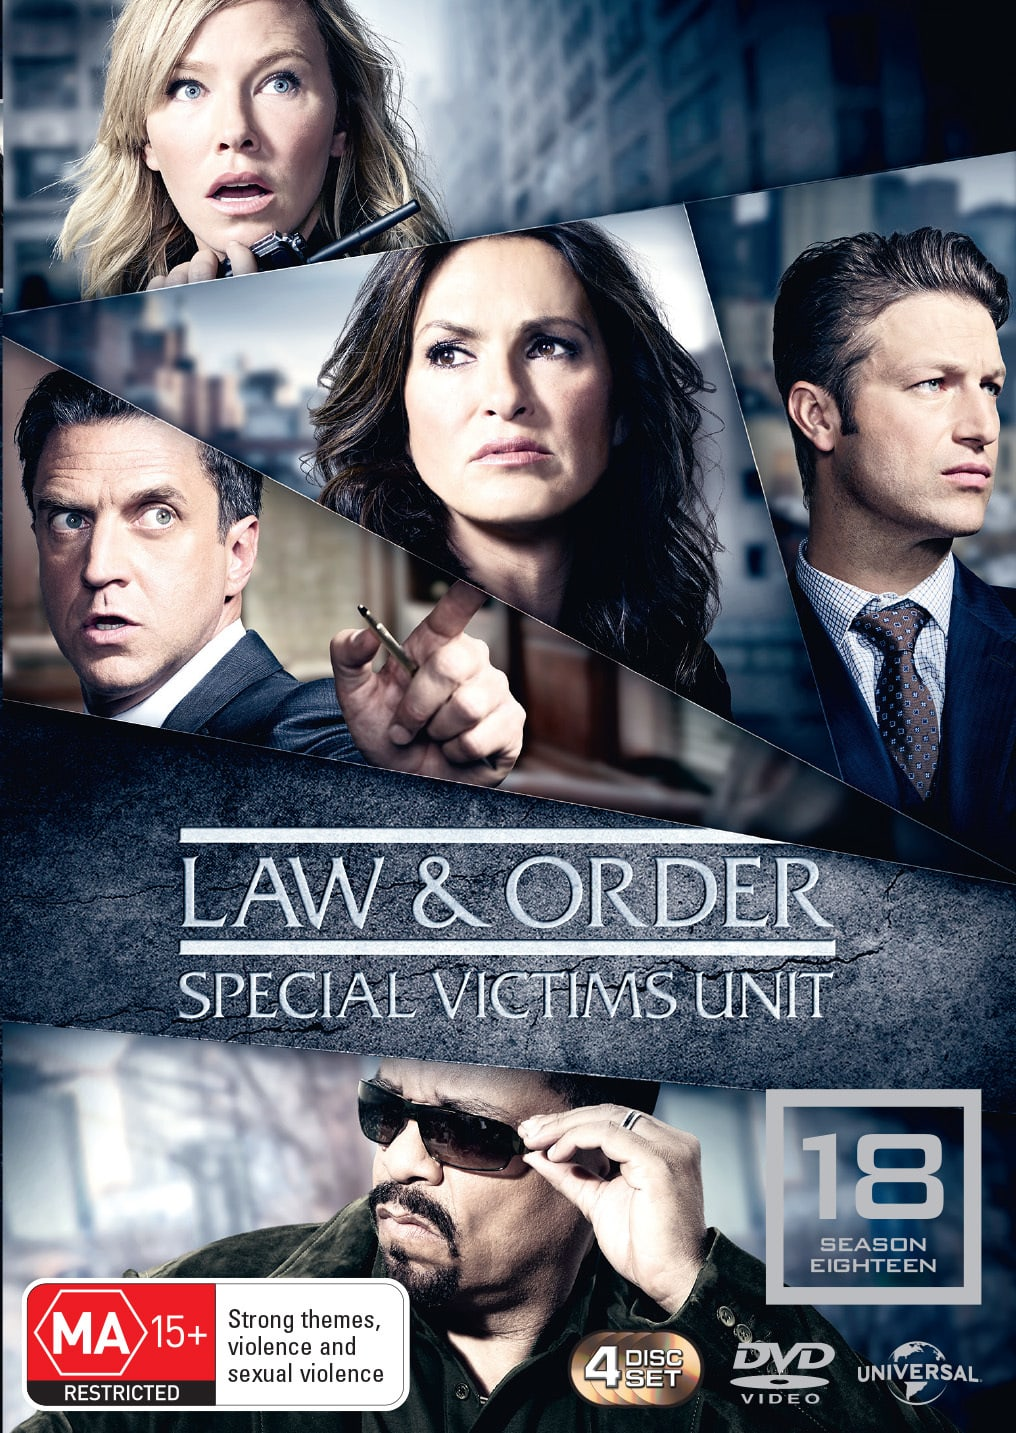 Law and Order - Special Victims Unit: Season 18 [DVD]